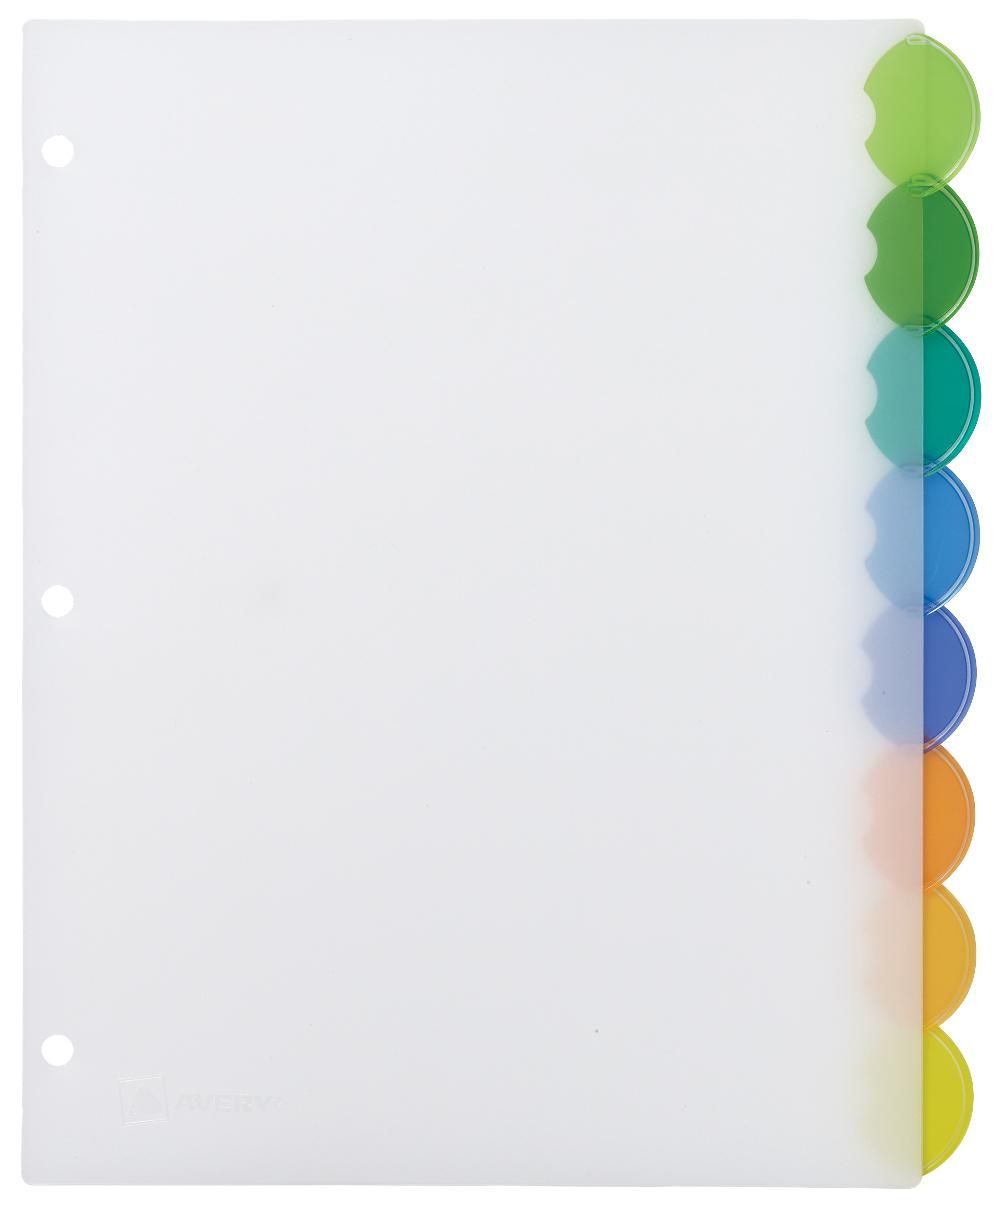 Dividers Come In A Variety Of Sizes And Colors